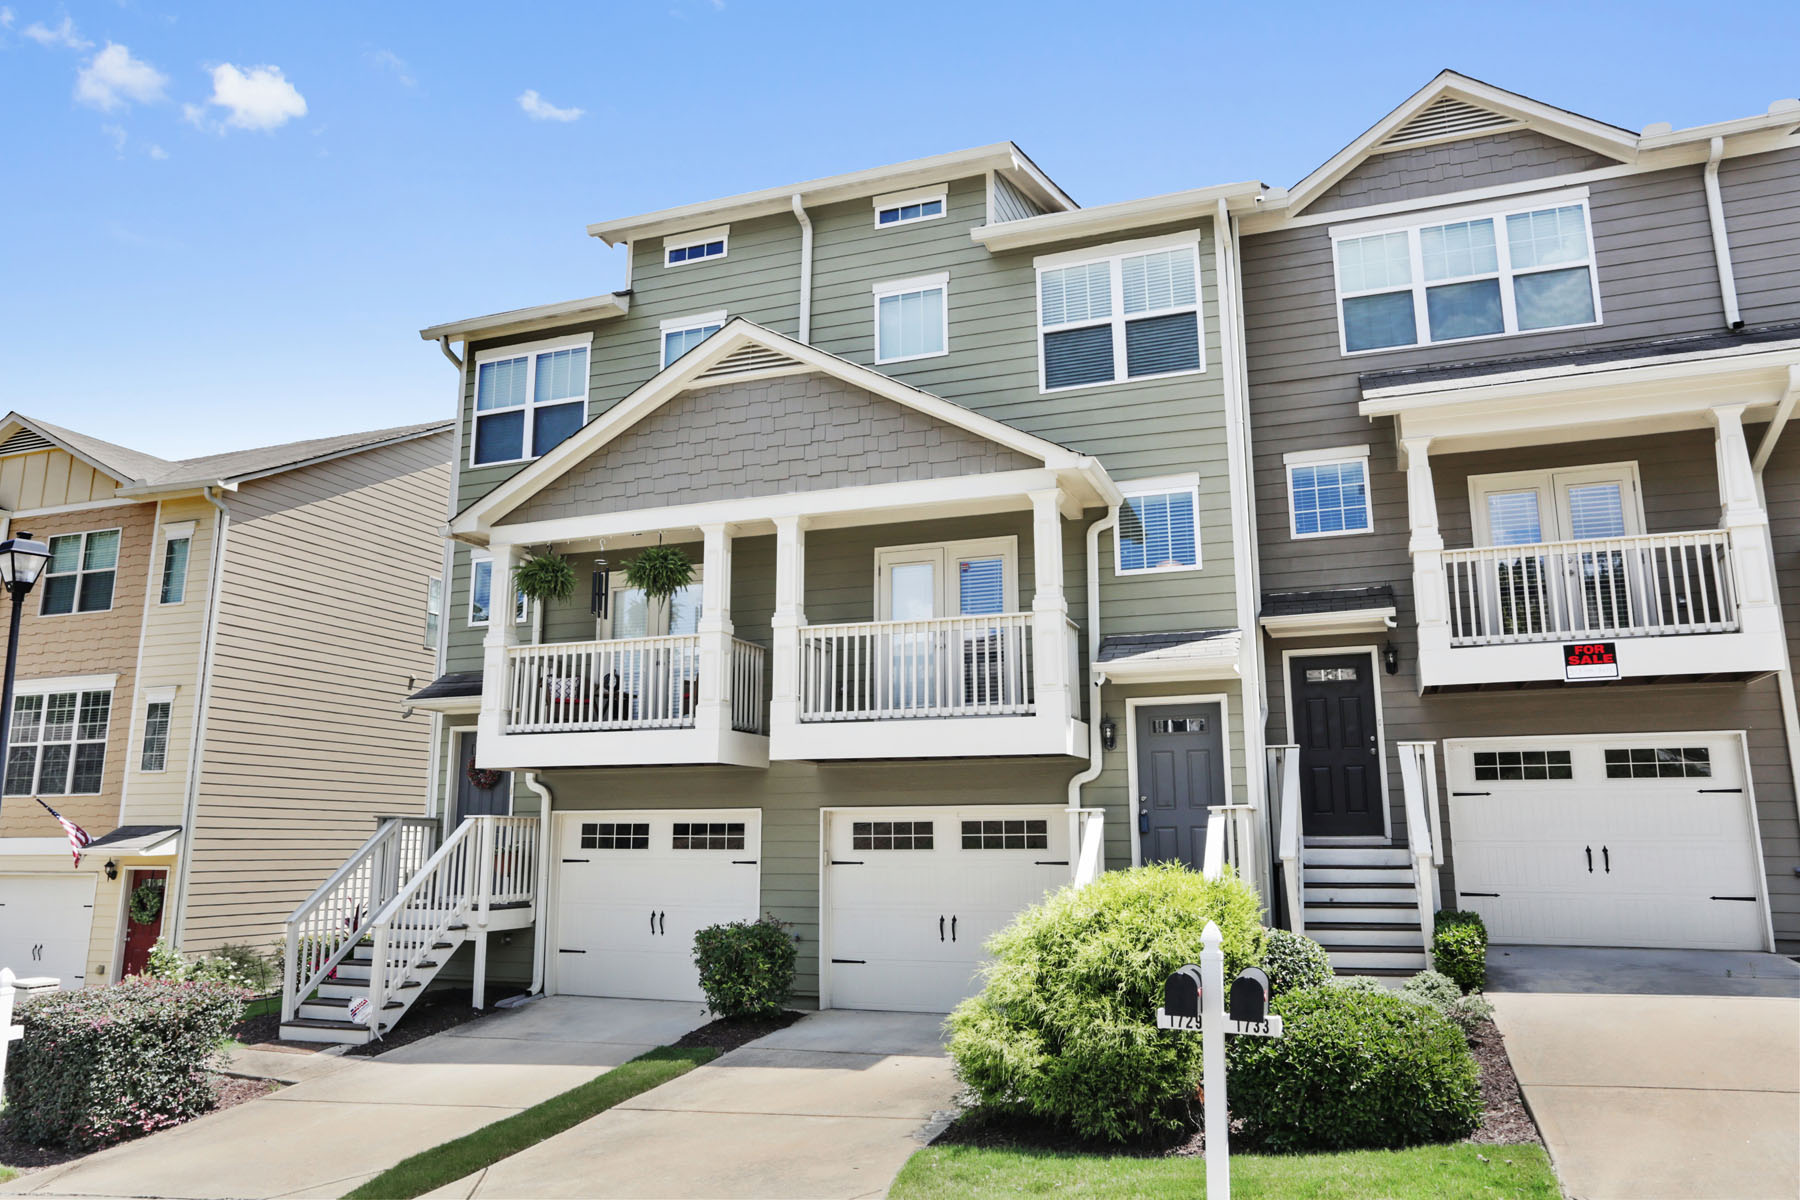 Townhouse for Rent at Liberty Park Townhome 1729 Liberty Parkway, Atlanta, Georgia, 30318 United States